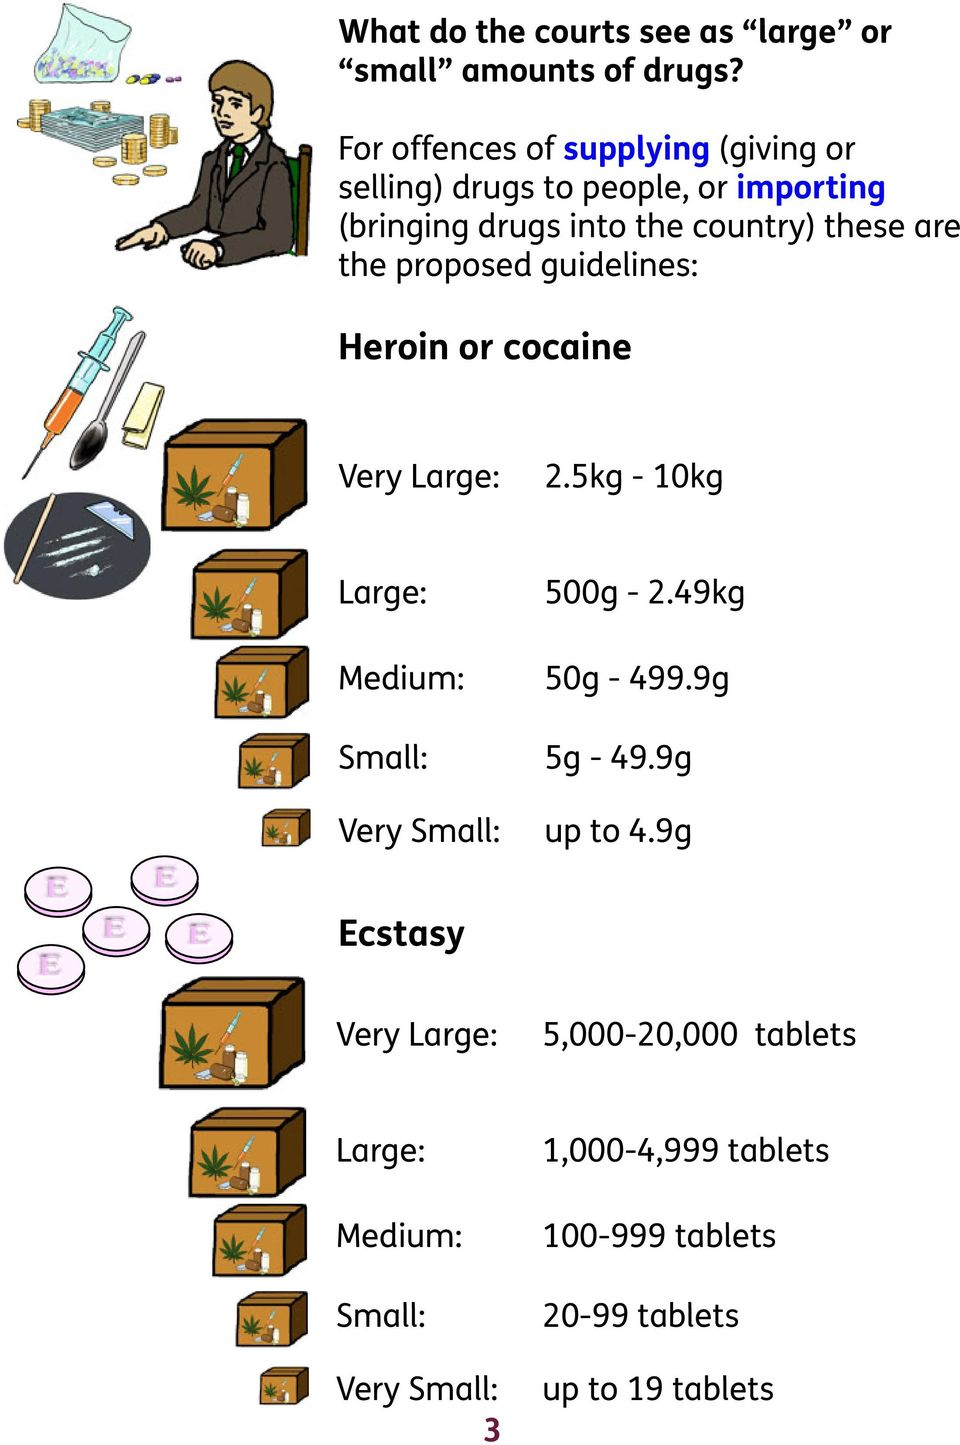 are the proposed guidelines: Heroin or cocaine Very Large: 2.5kg - 10kg Large: 500g - 2.49kg Medium: 50g - 499.